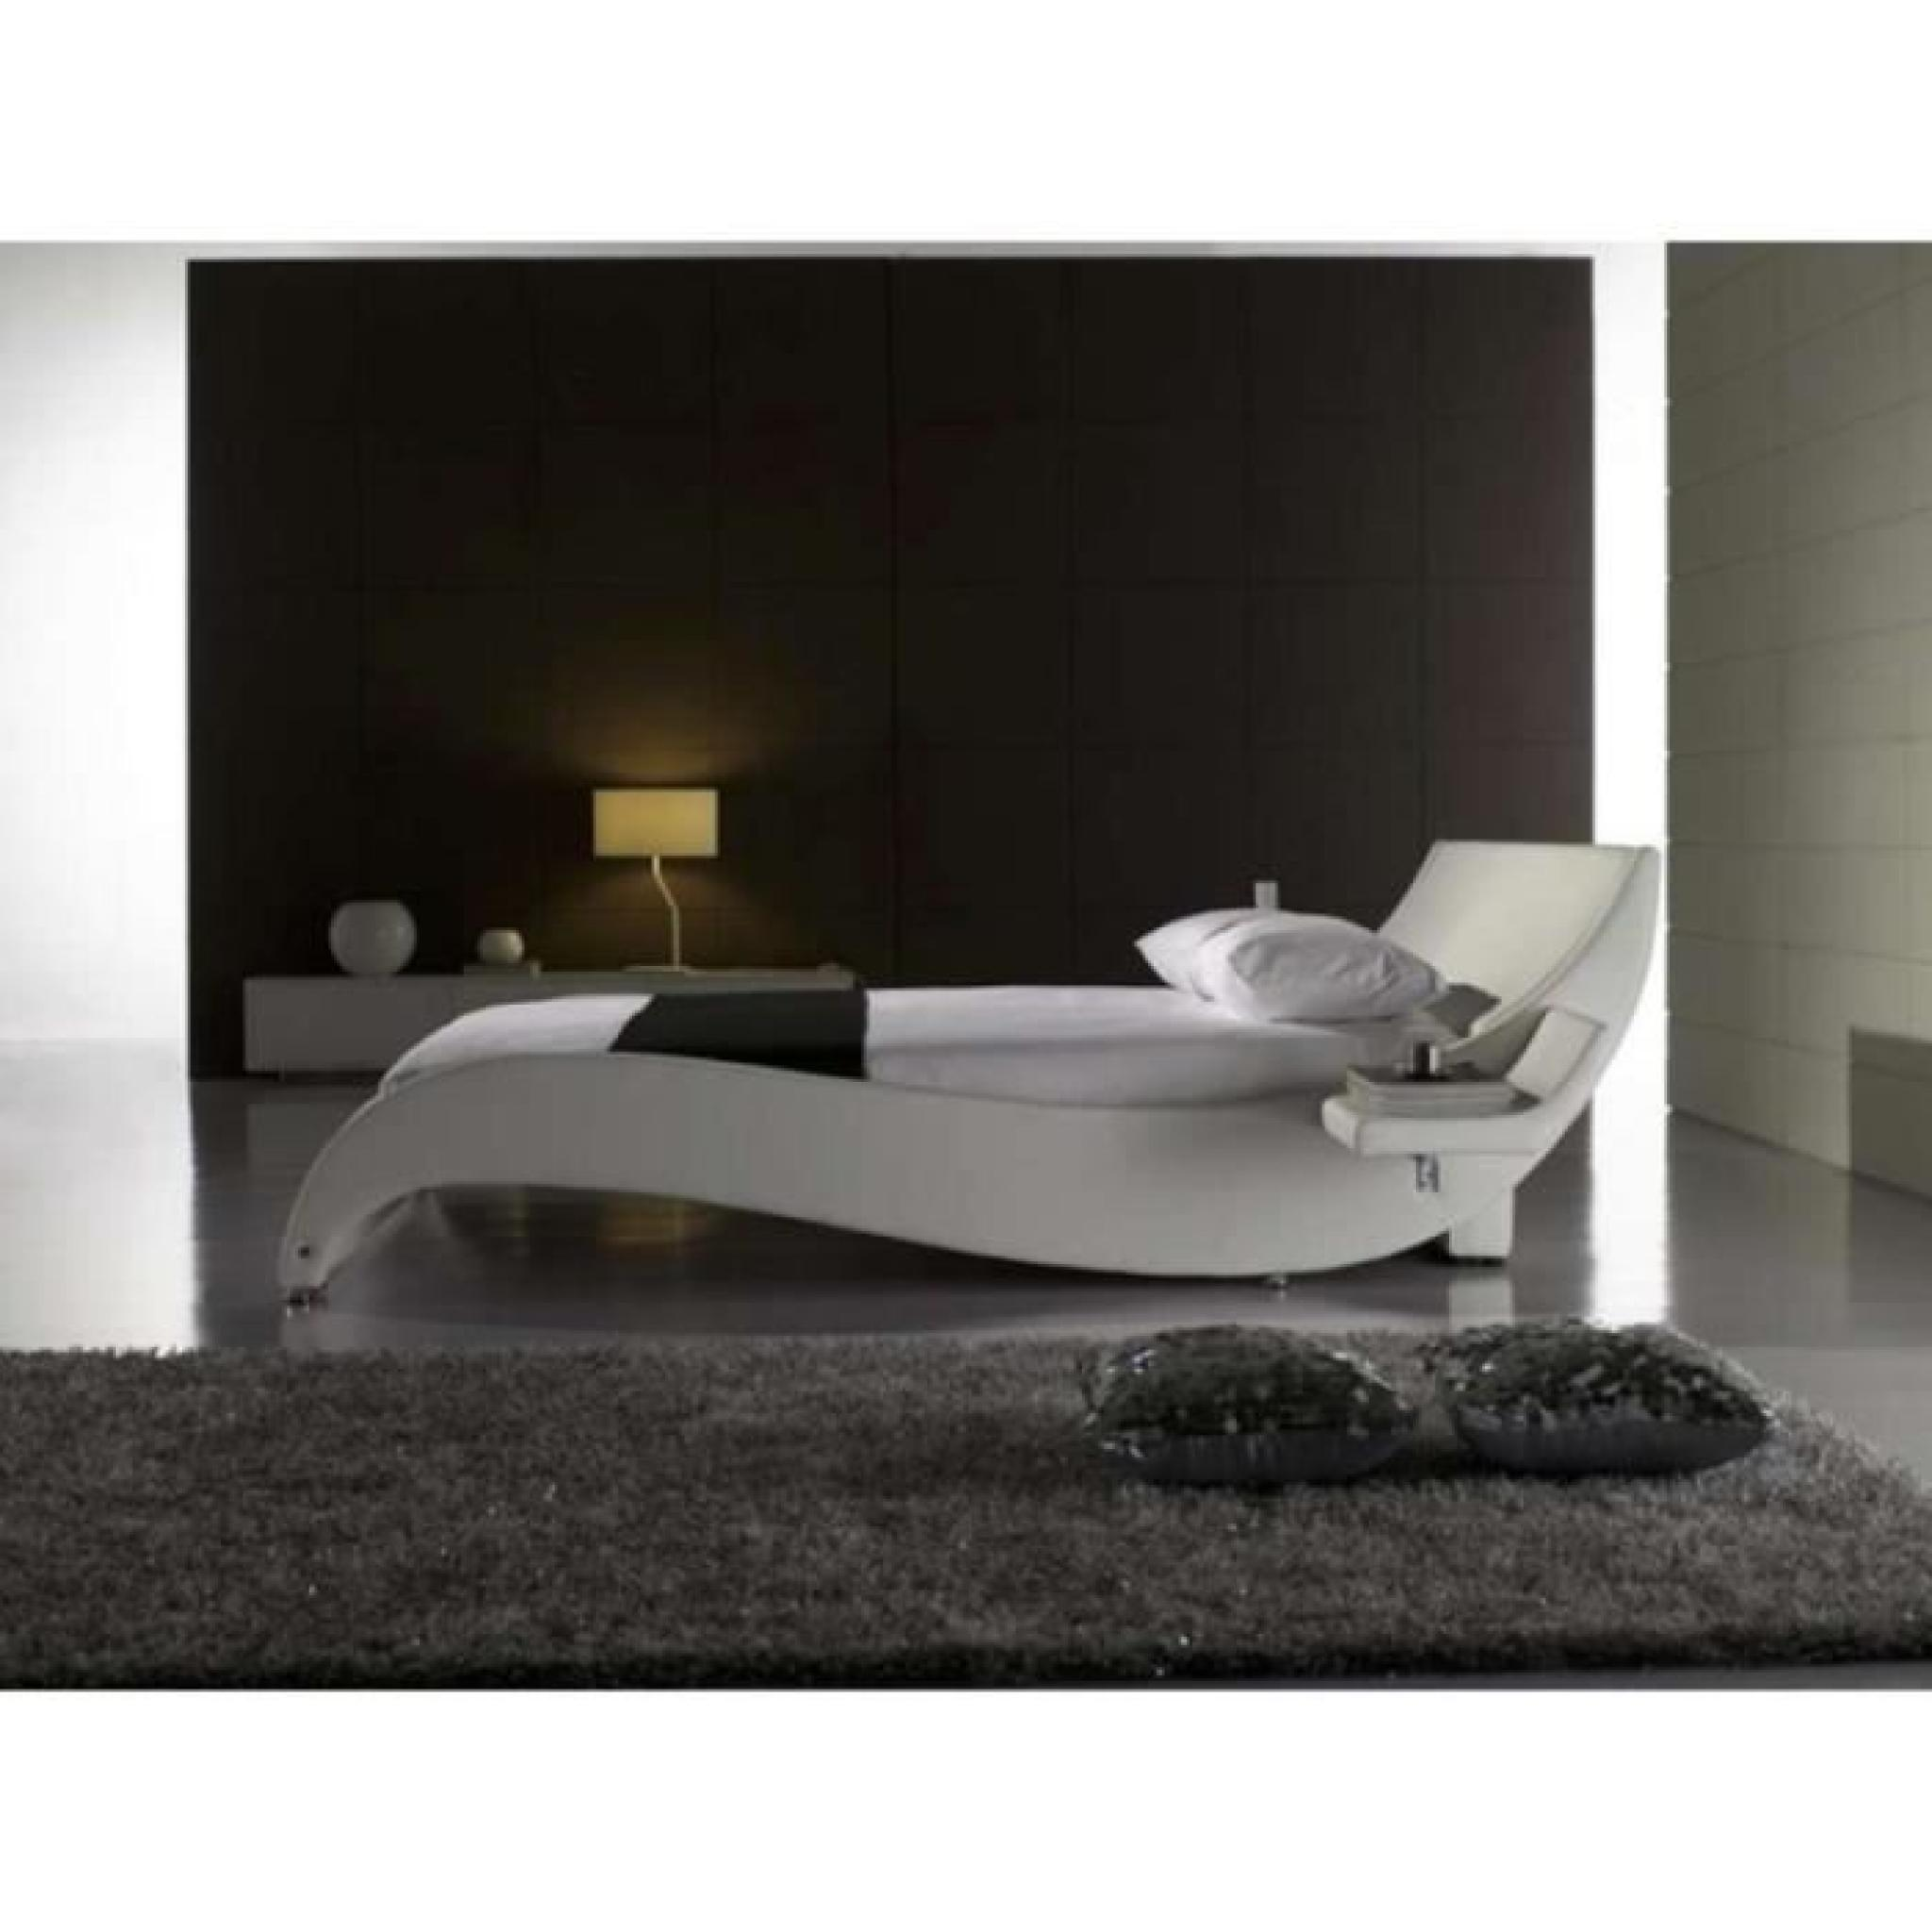 justhome macao blanc lit rembourr en cuir cologique taille 140 x 200 cm achat vente lit. Black Bedroom Furniture Sets. Home Design Ideas